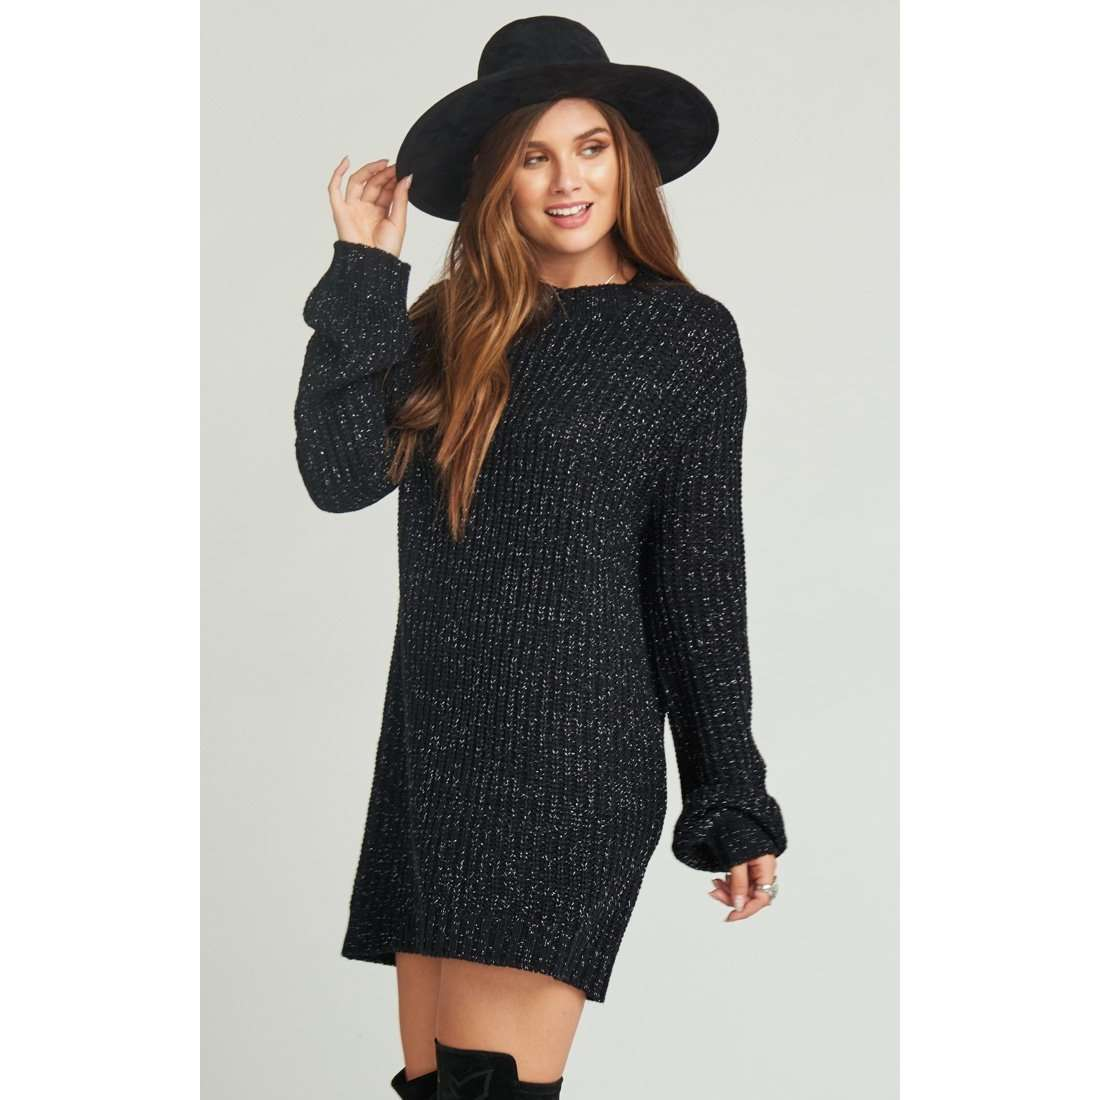 8.28 Boutique:Show Me Your Mumu,Show Me Your Mumu Albert Black Sweater Dress,Dress